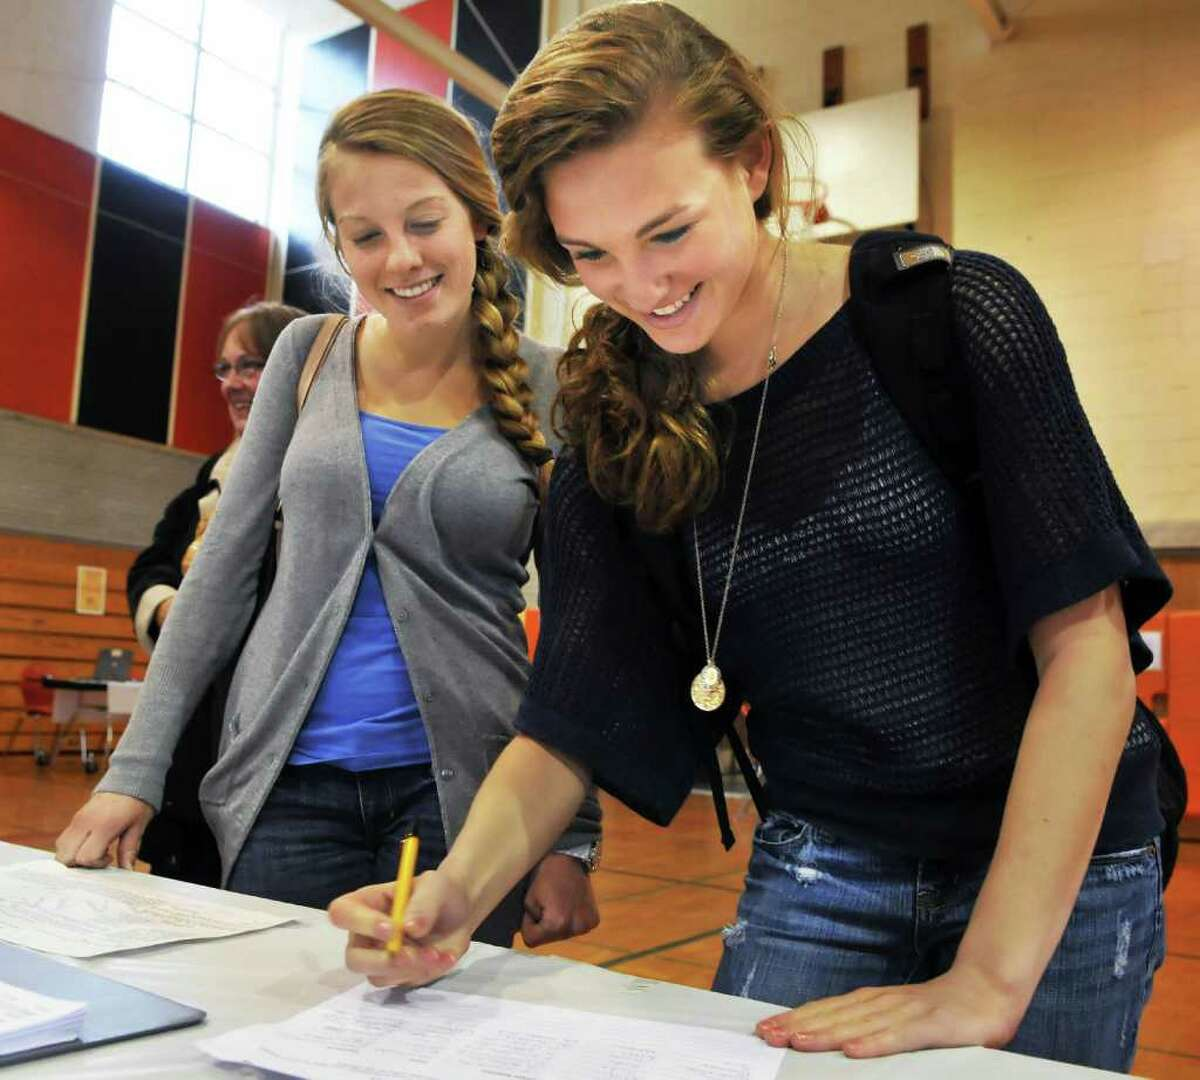 First-time voters Veronica Lane, left, and Megan Perry sign in for Bethlehem High School's budget vote on Tuesday, May 17, 2011. (John Carl D'Annibale / Times Union)